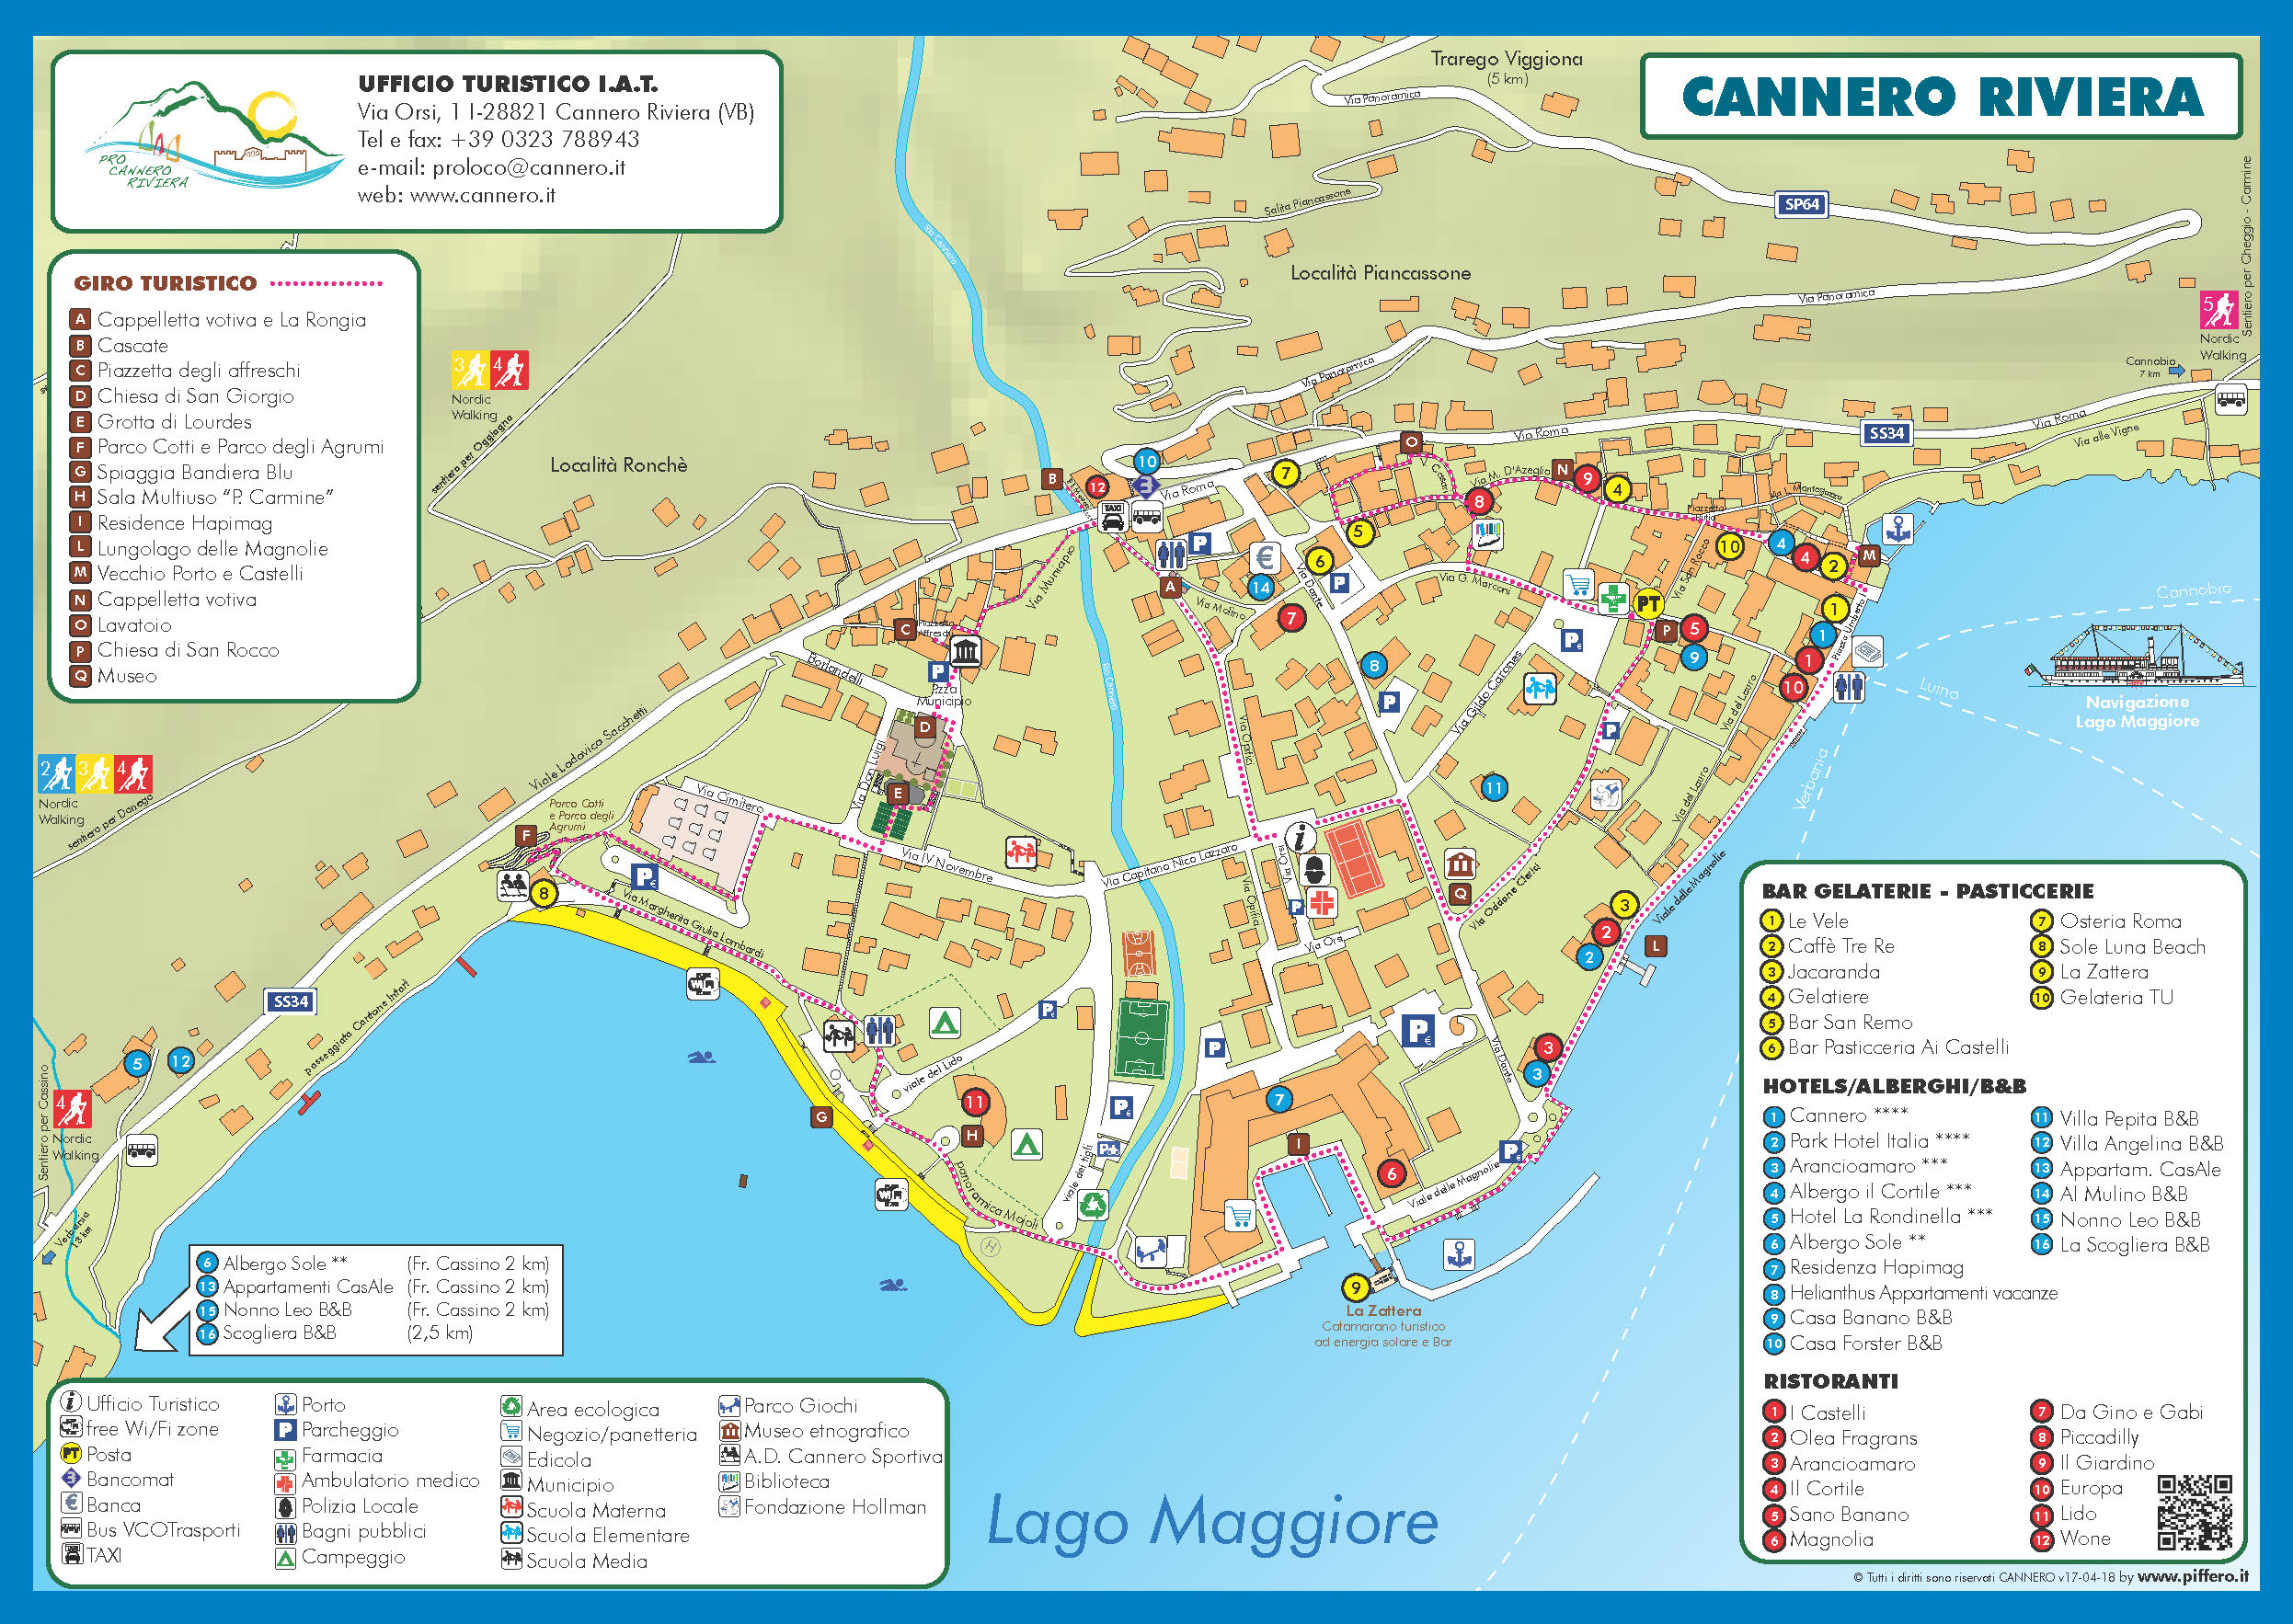 Cartina turistica di Cannero